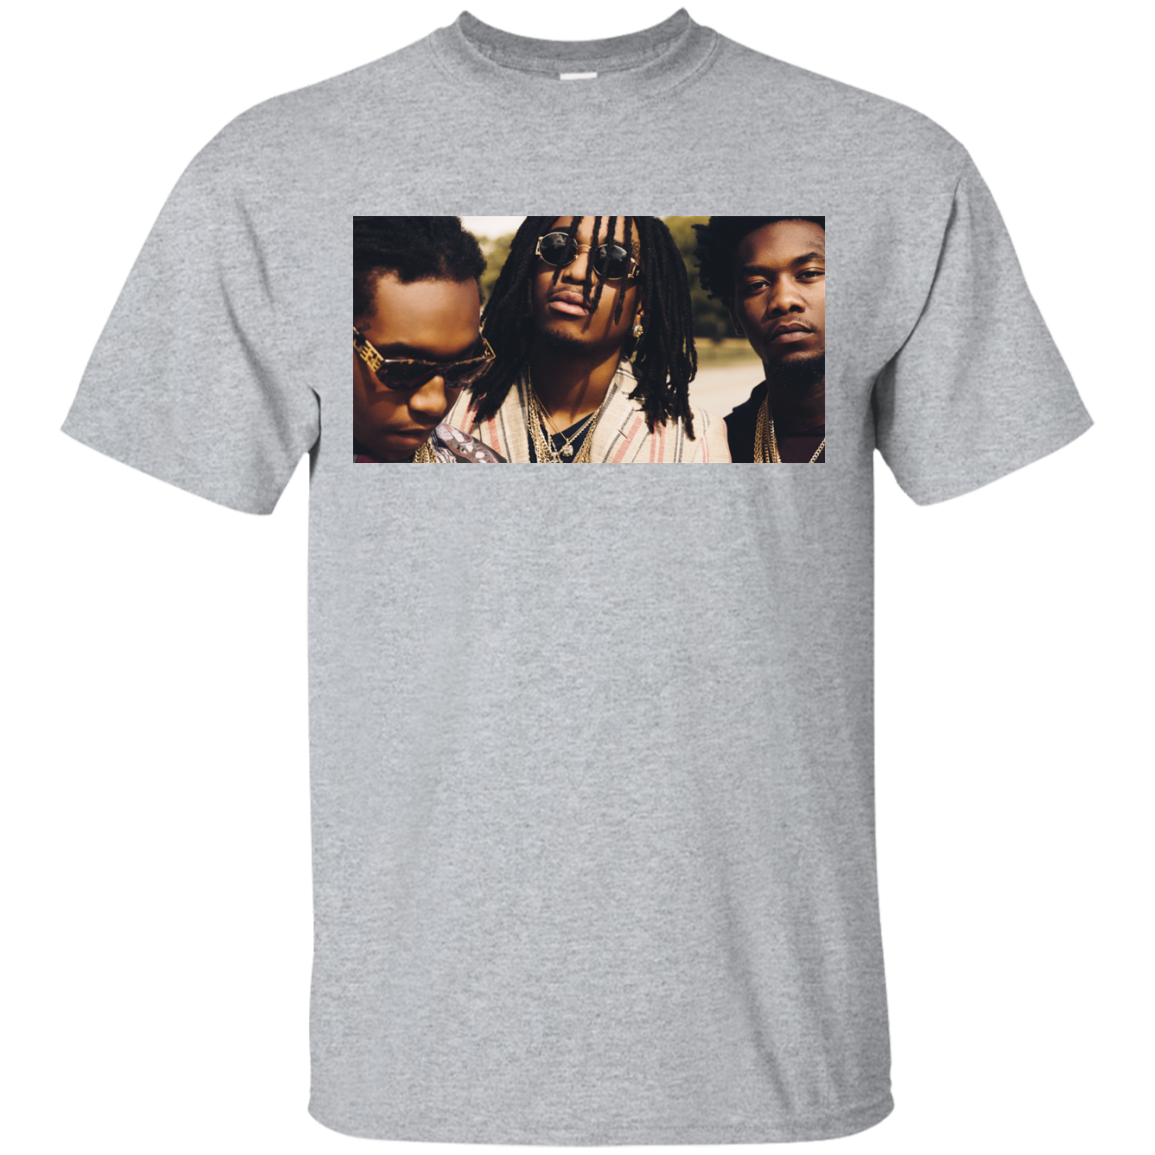 Migos T Shirt Migos Cotton Unisex 39 S T Shirt Hoodies